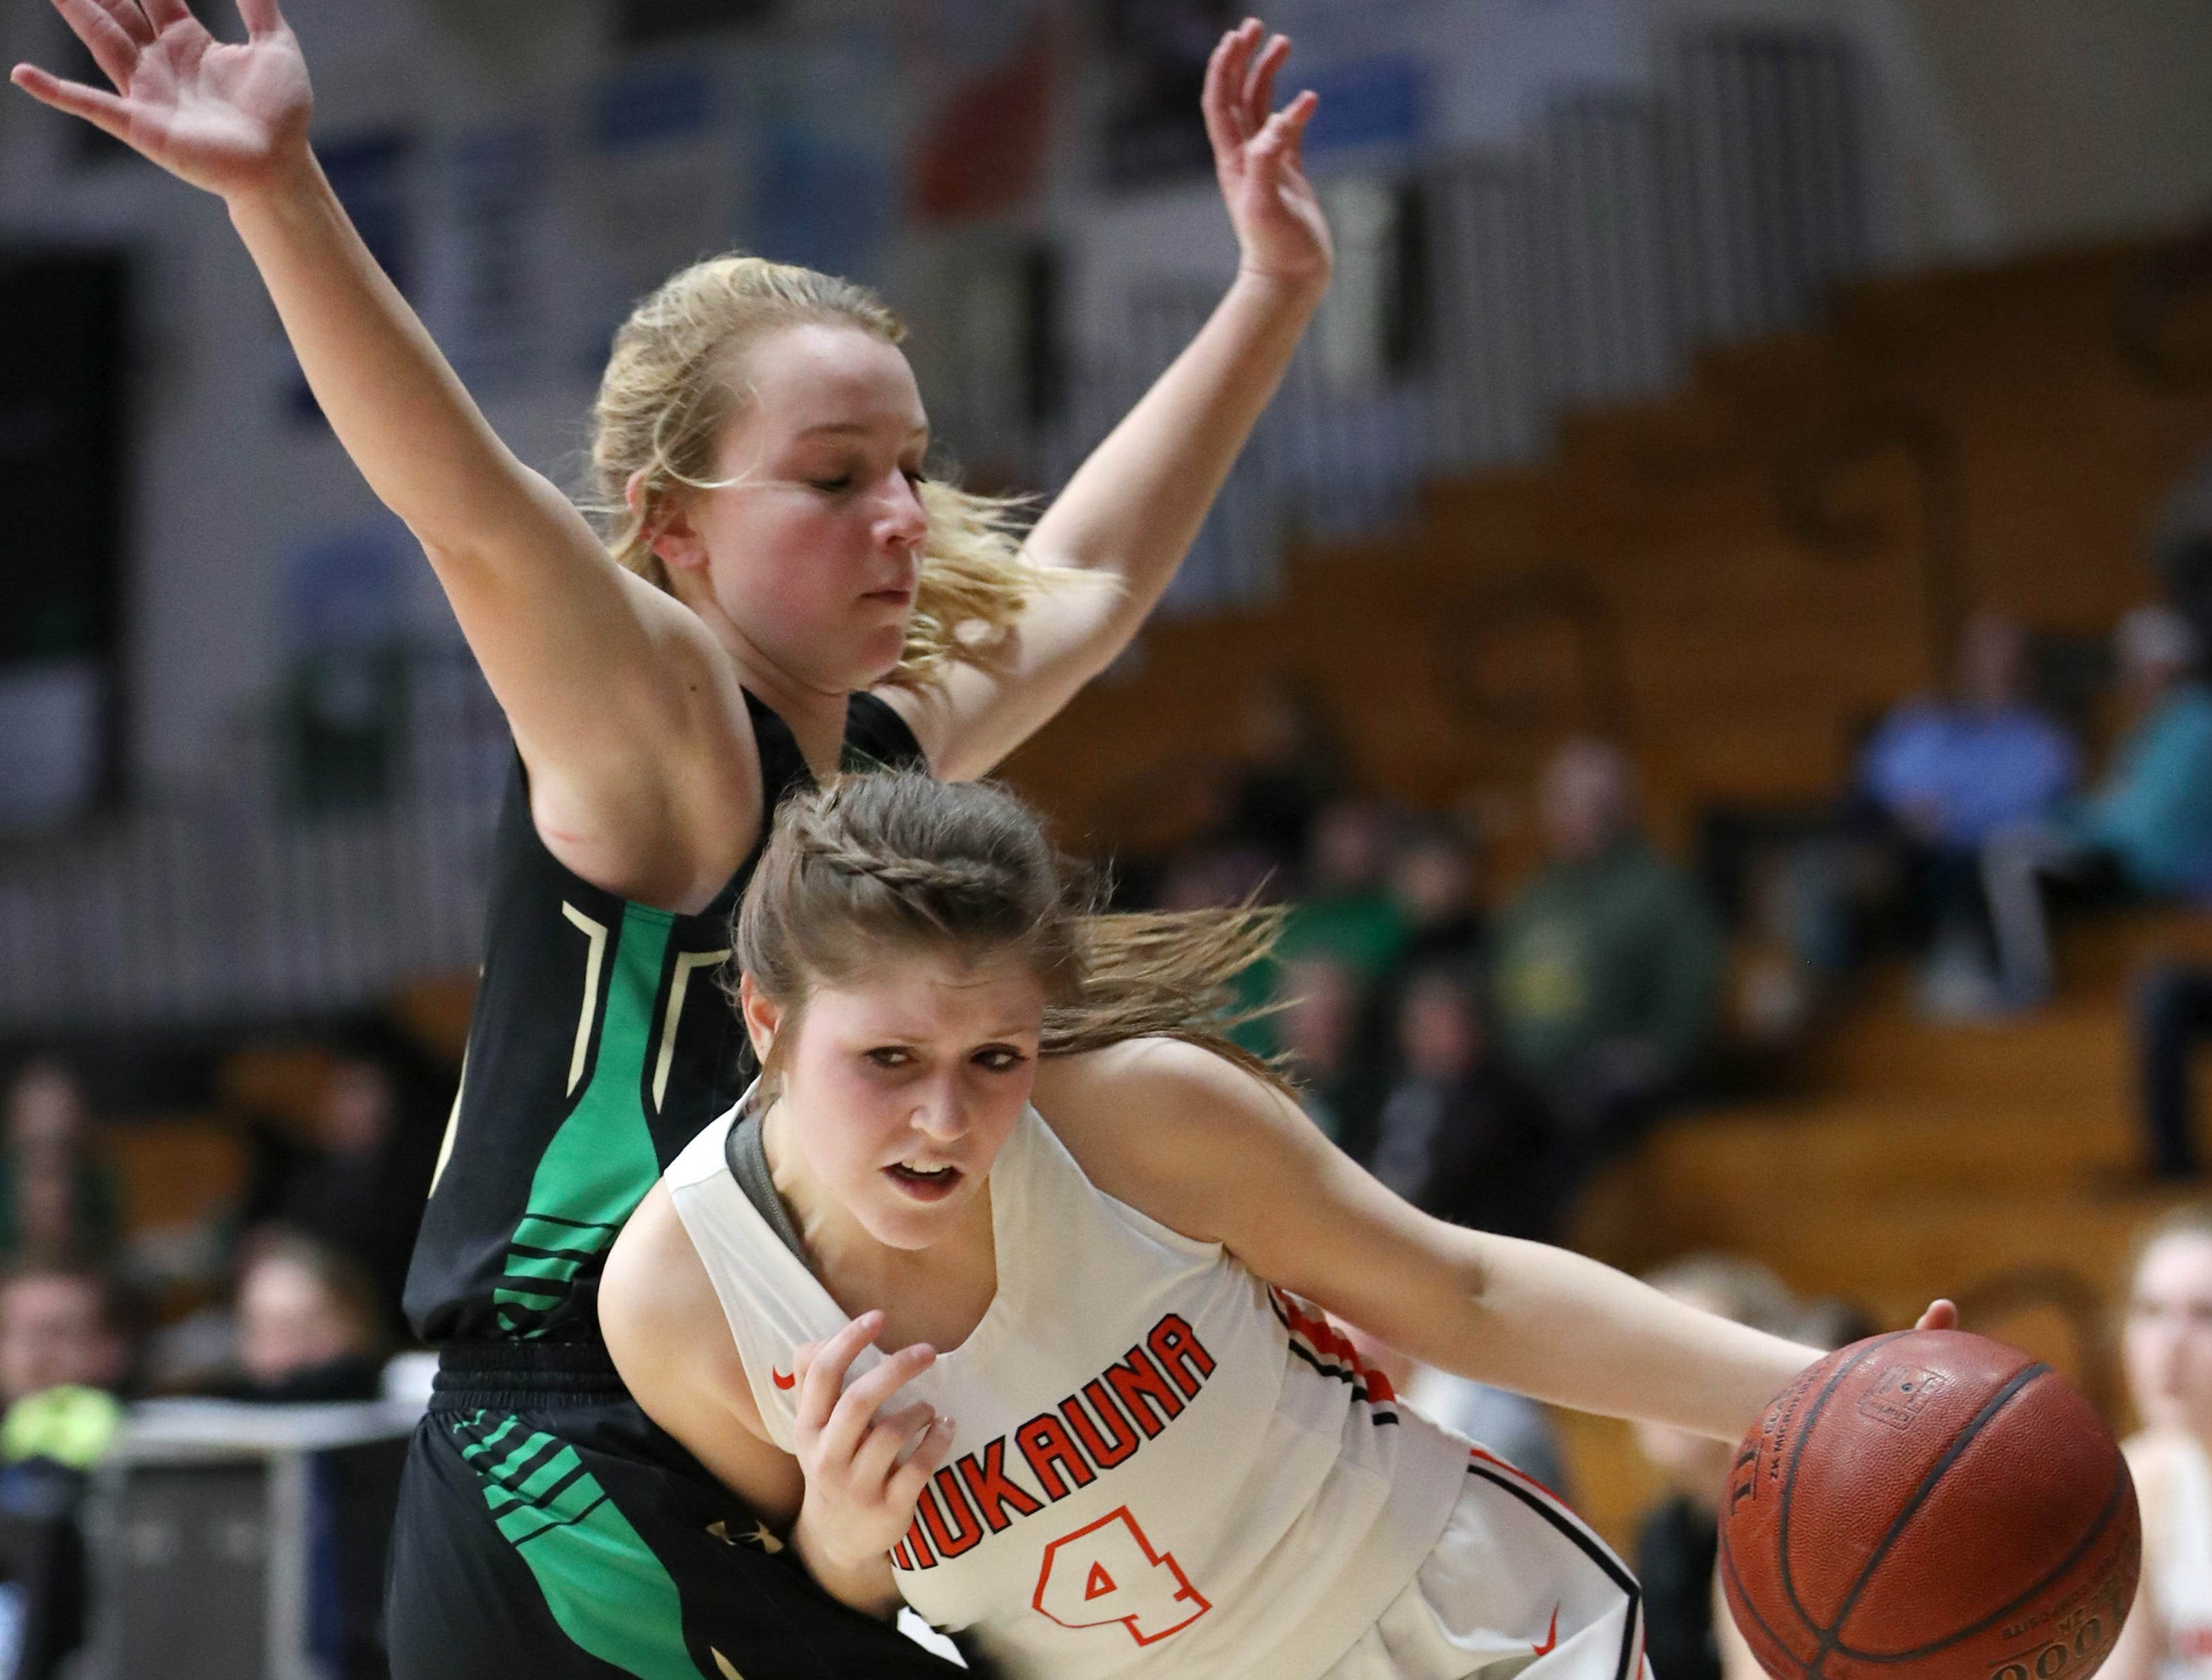 Kaukauna High School's Graysin Hartjes tries to push past Oshkosh North High SchoolÕs Brooke Ellestad during their game Tuesday, Feb. 5, 2019, in Kaukauna, Wis. Oshkosh North defeated Kaukauna High School 77-51.